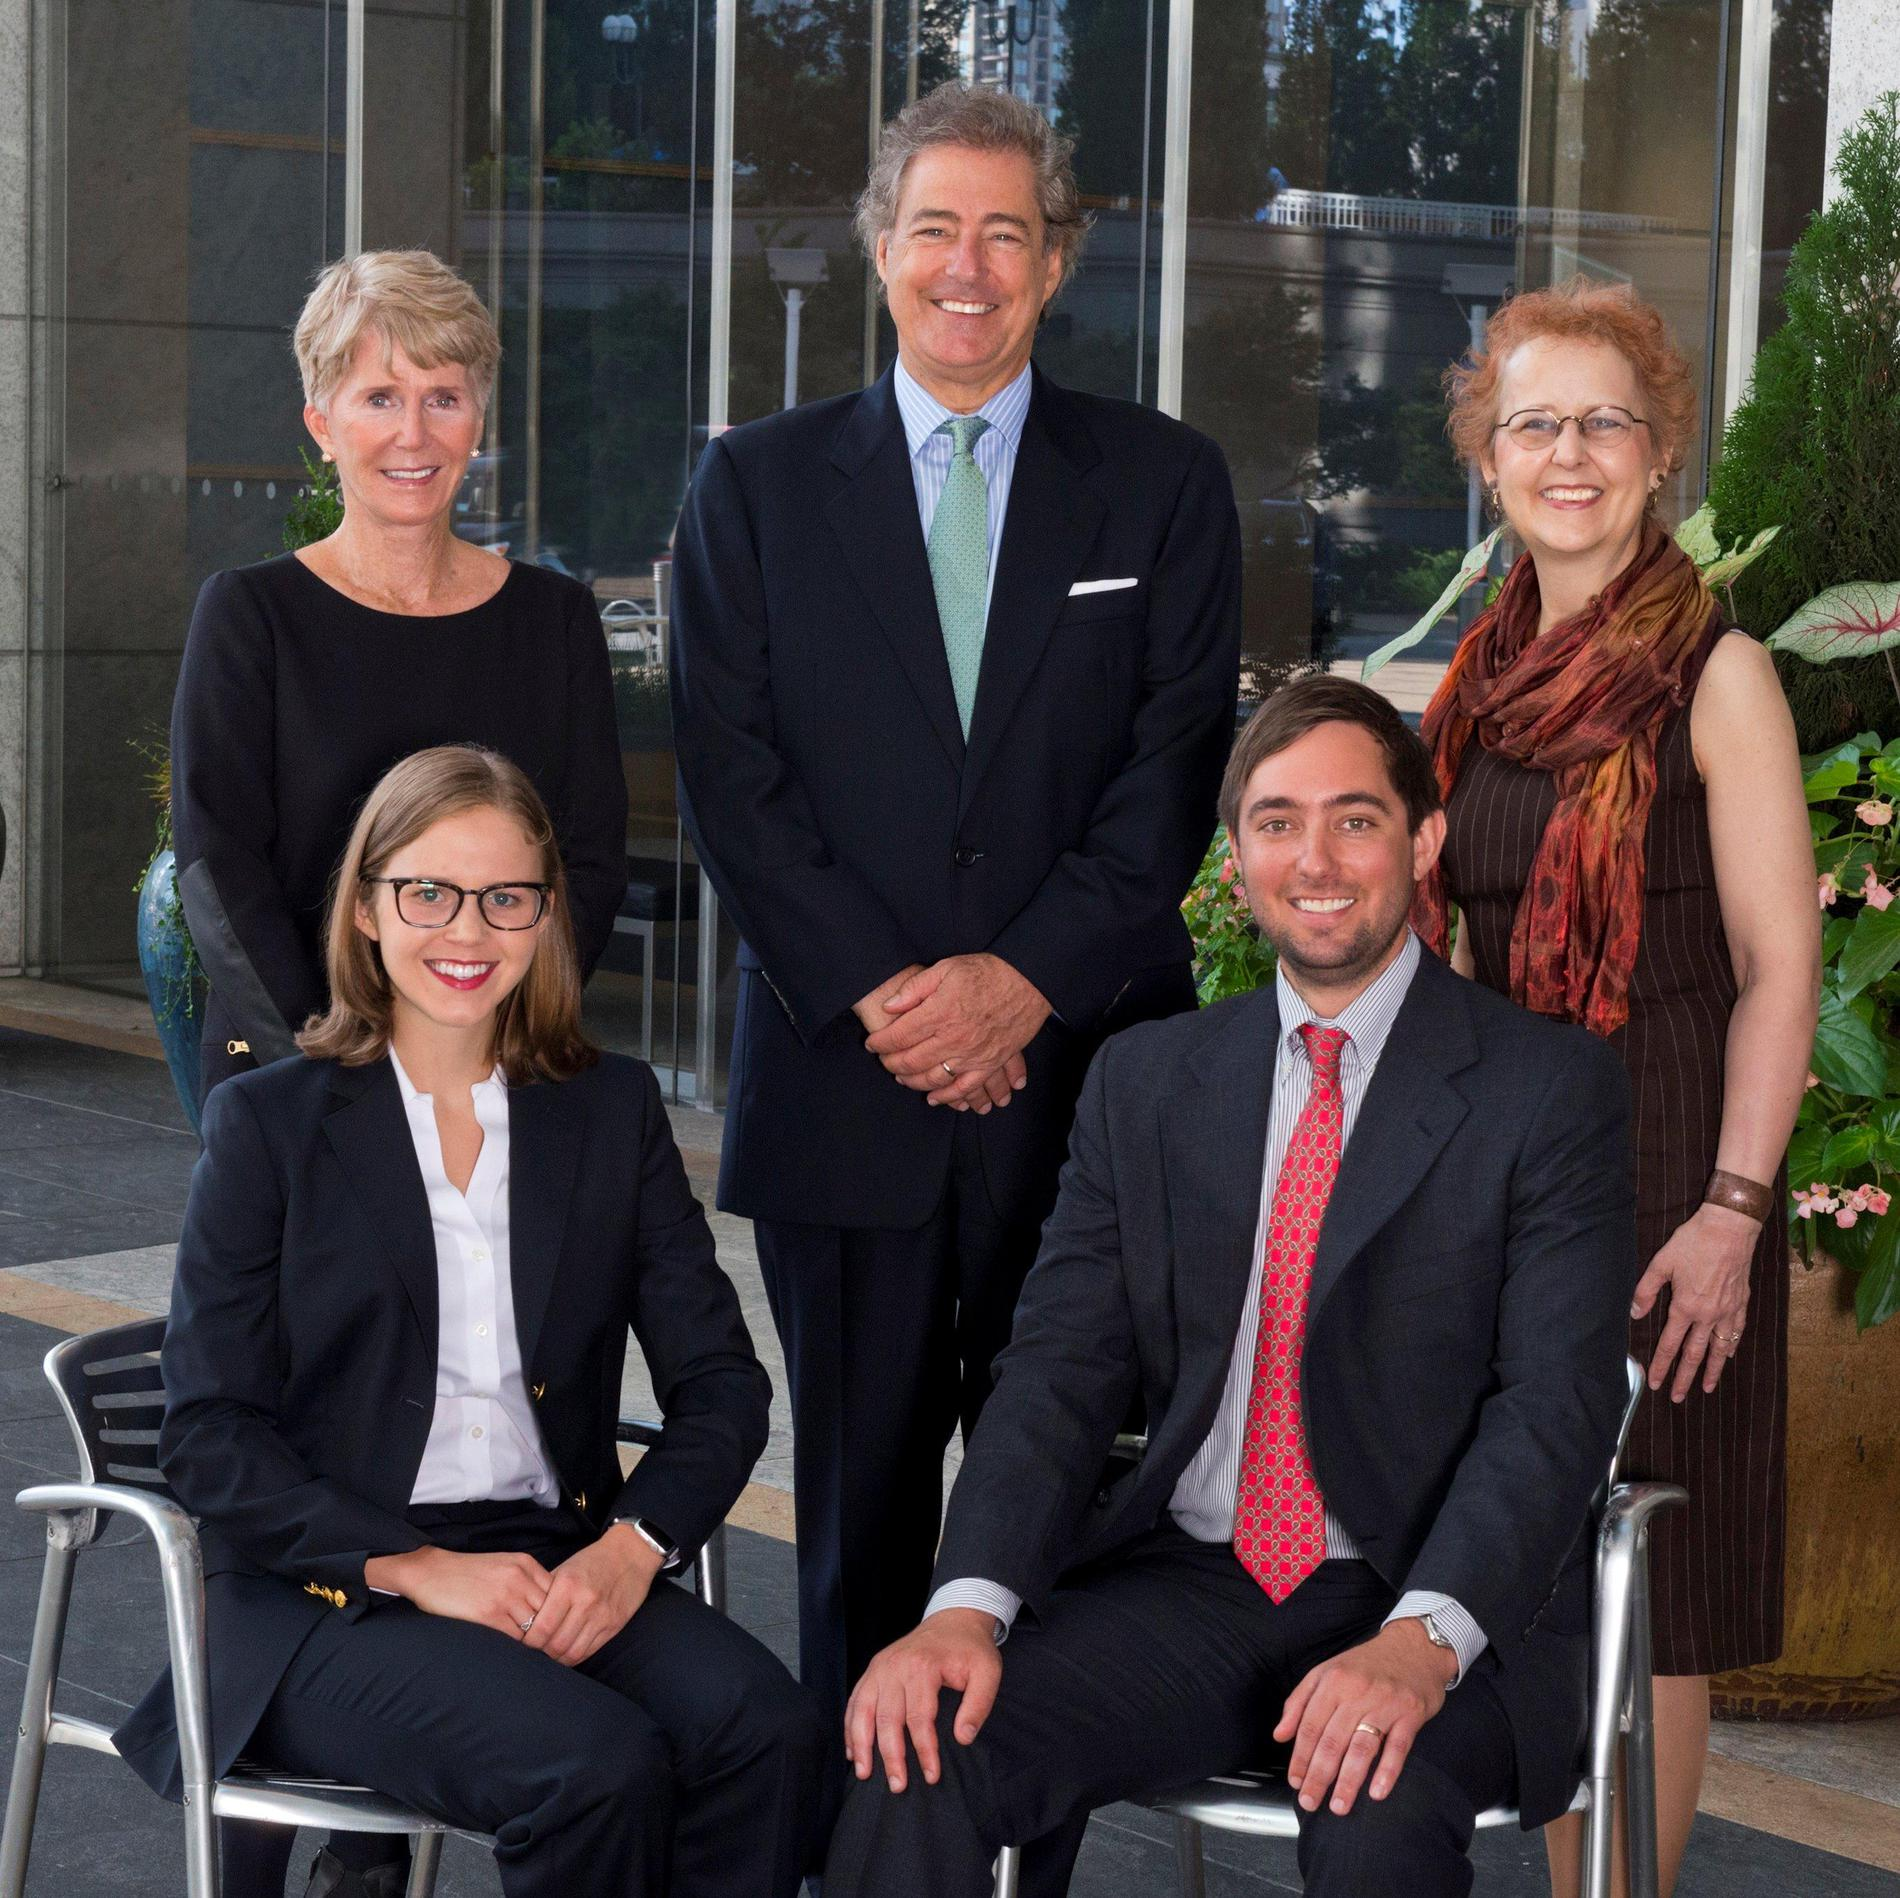 The Indigo Group | Atlanta, GA | Morgan Stanley Wealth Management